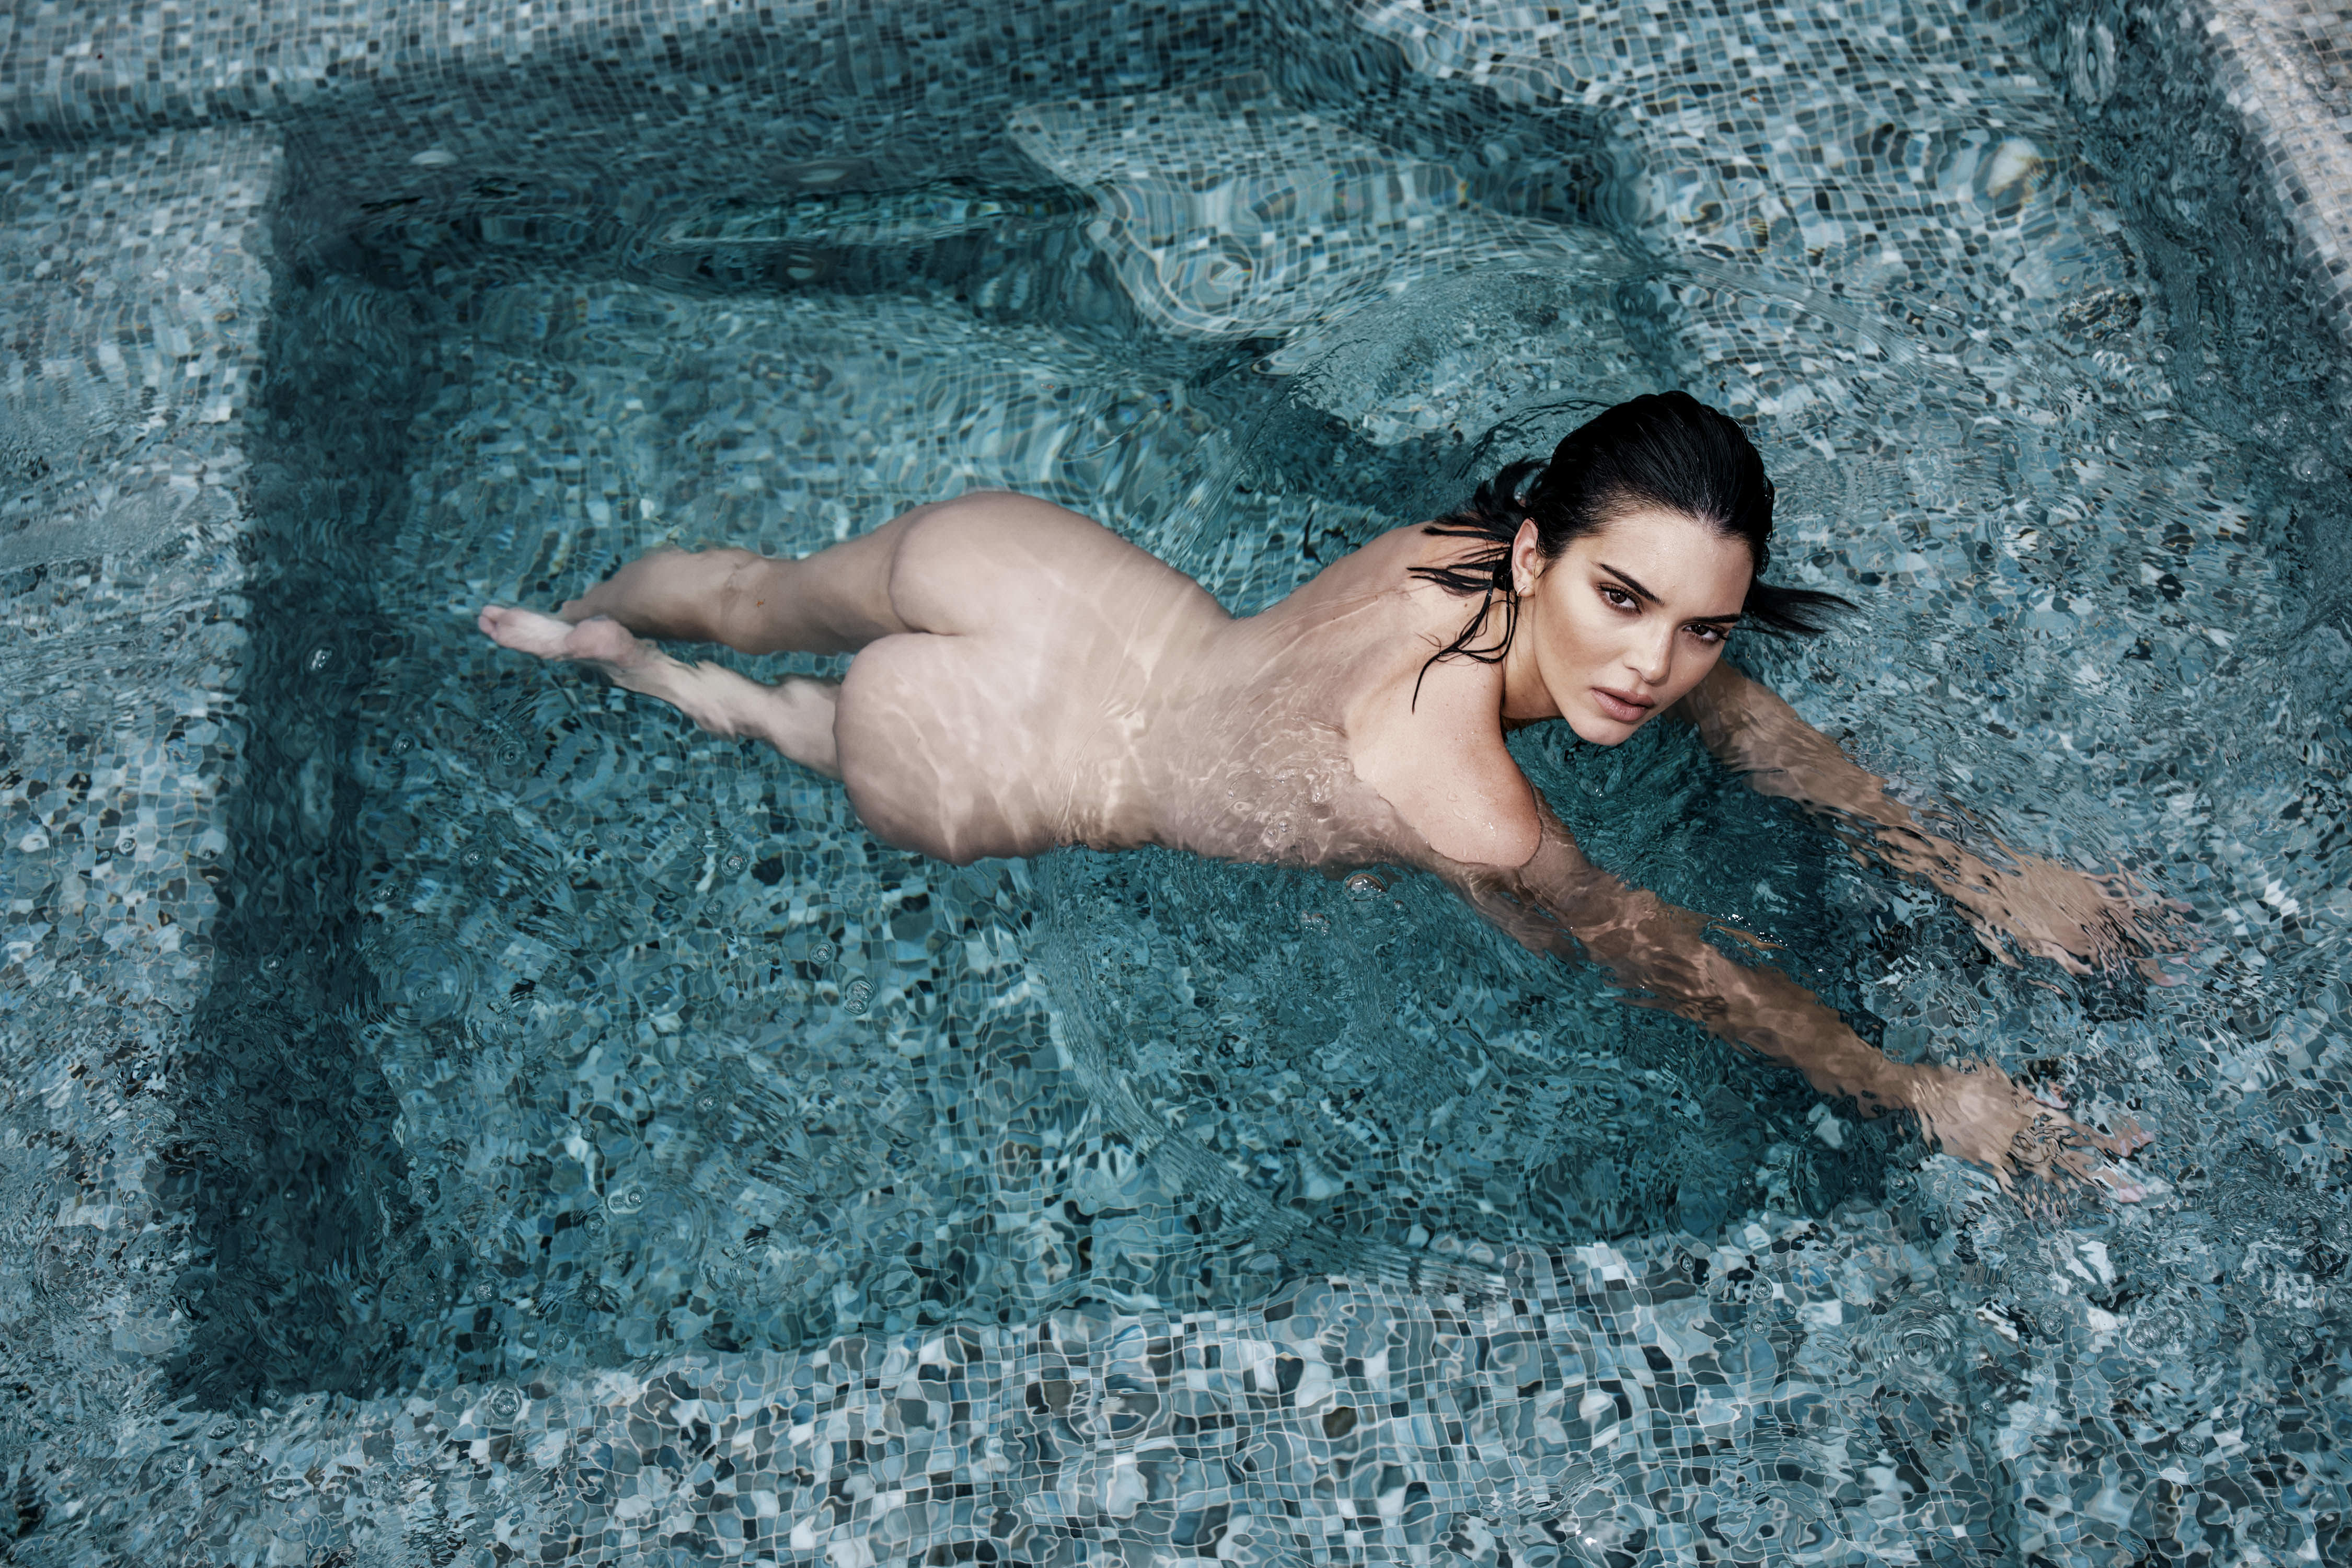 0810235419680_02_Kendall-Jenner-Nude-TheFappeningBlog.com-3.jpg